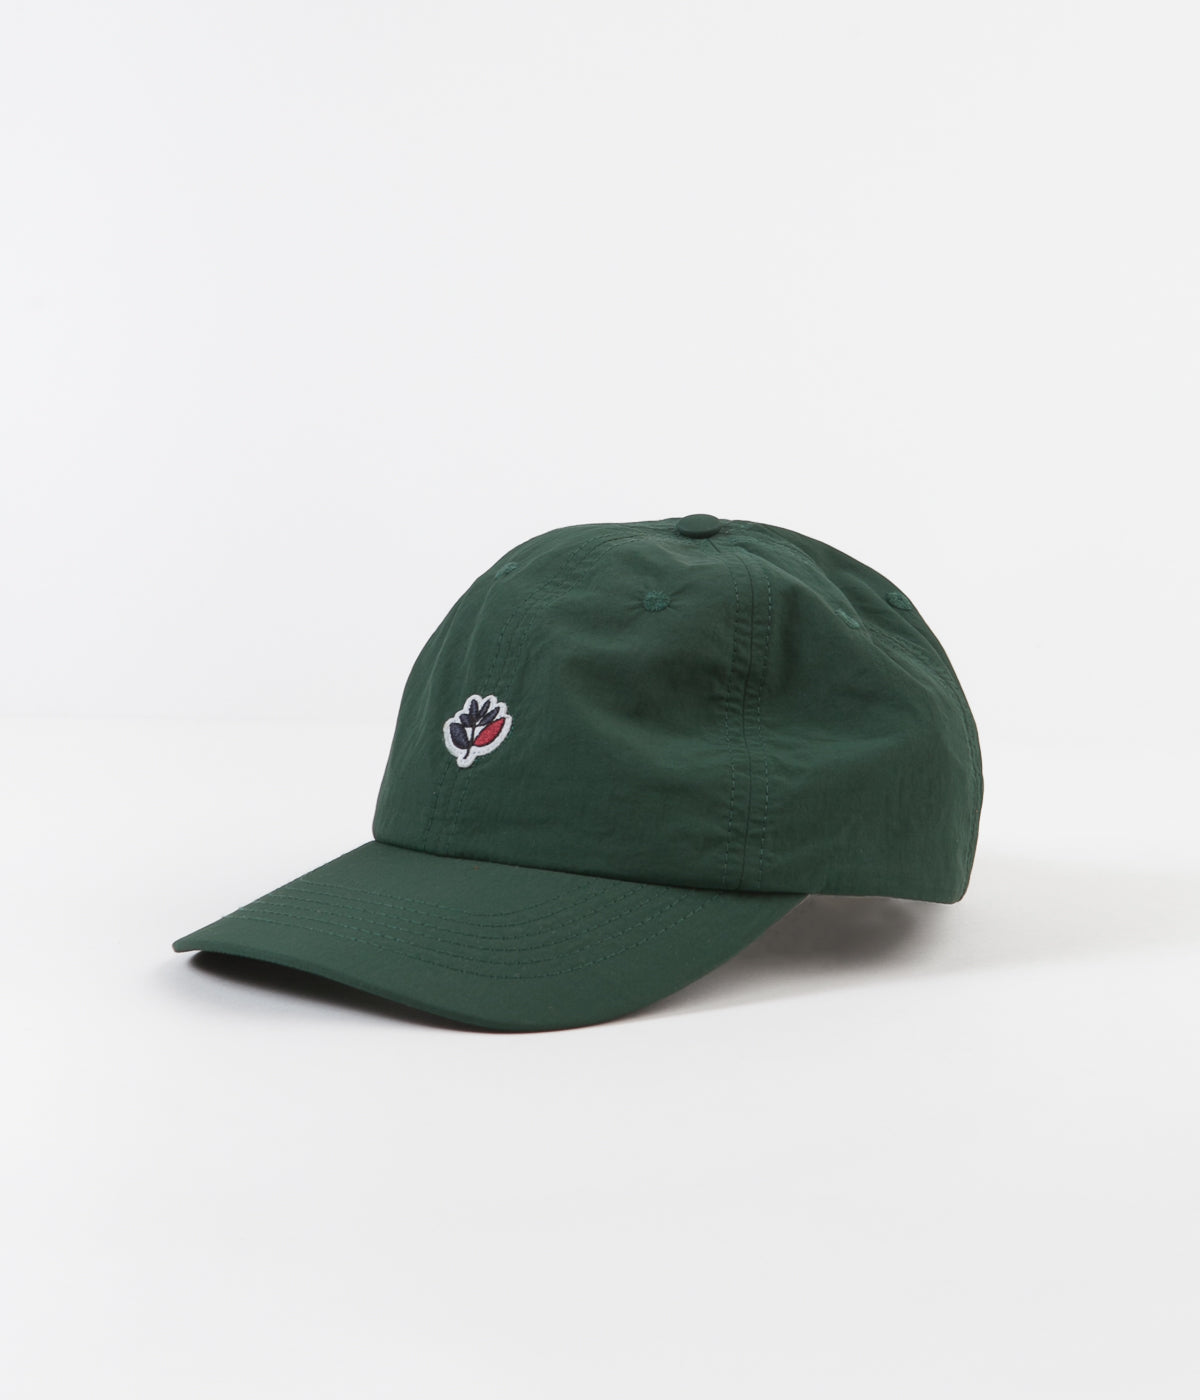 Magenta Dad Cap - Green Nylon